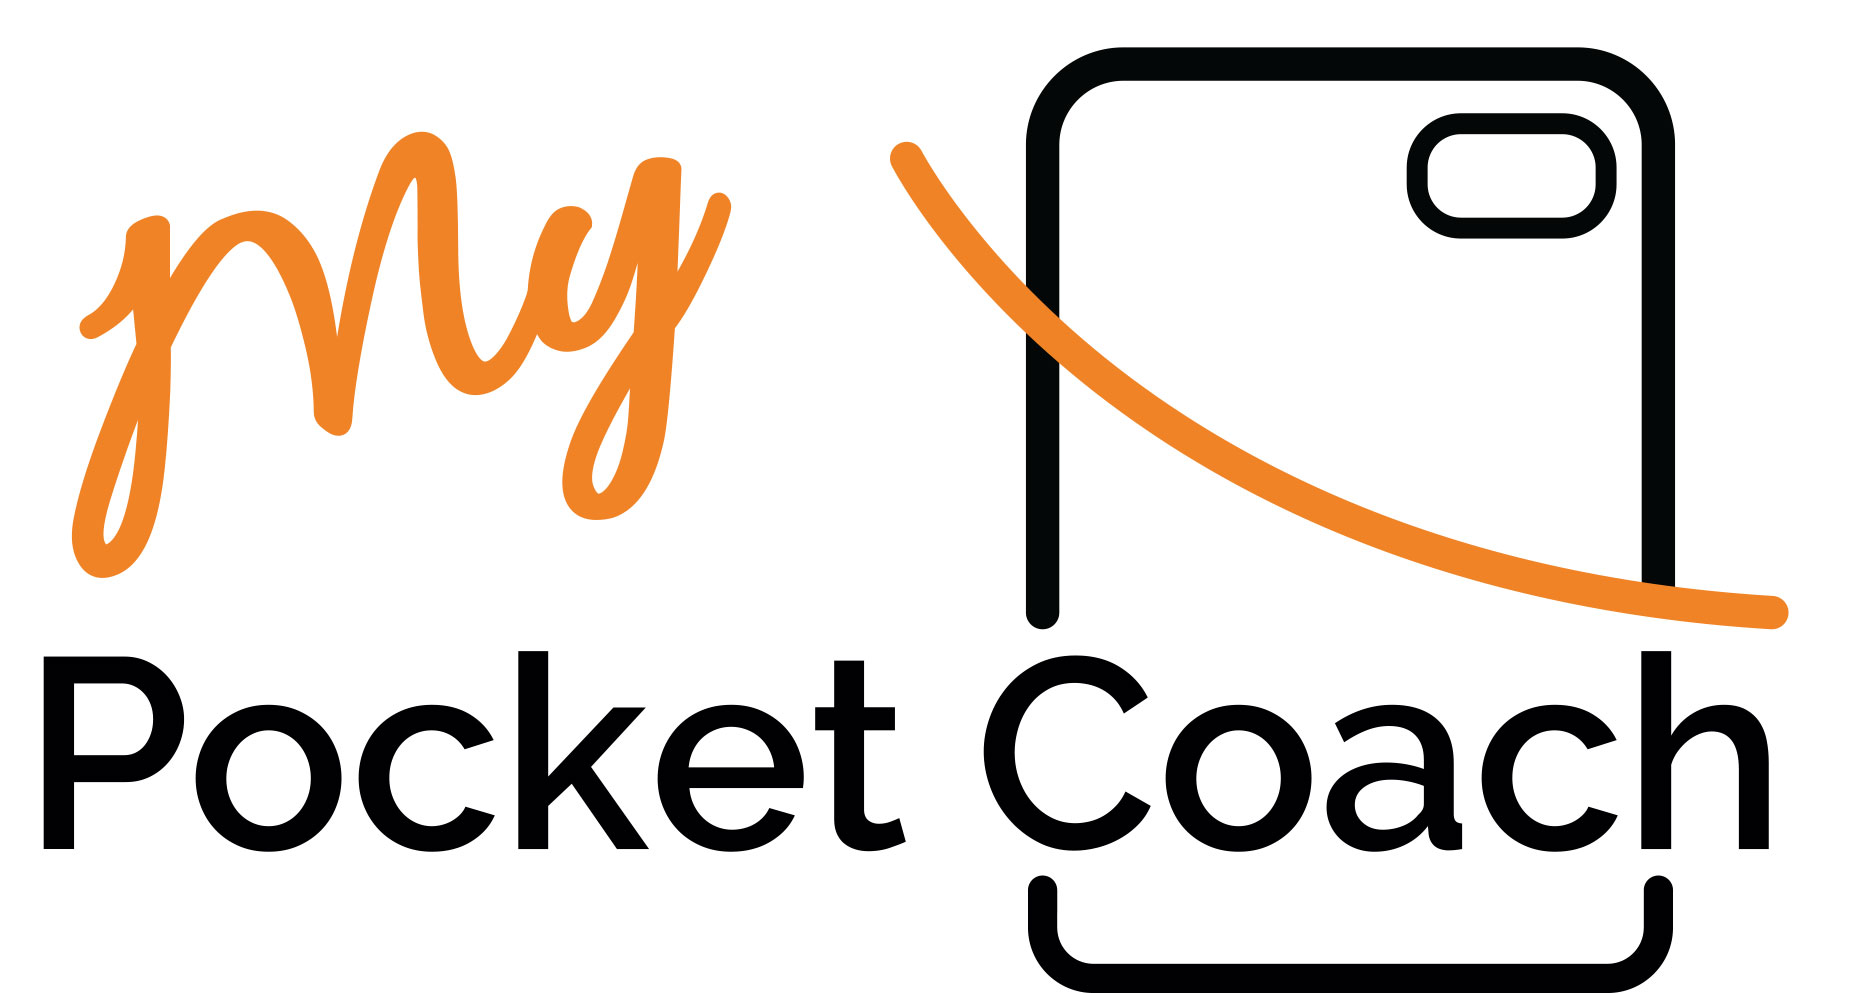 My Pocket Coach